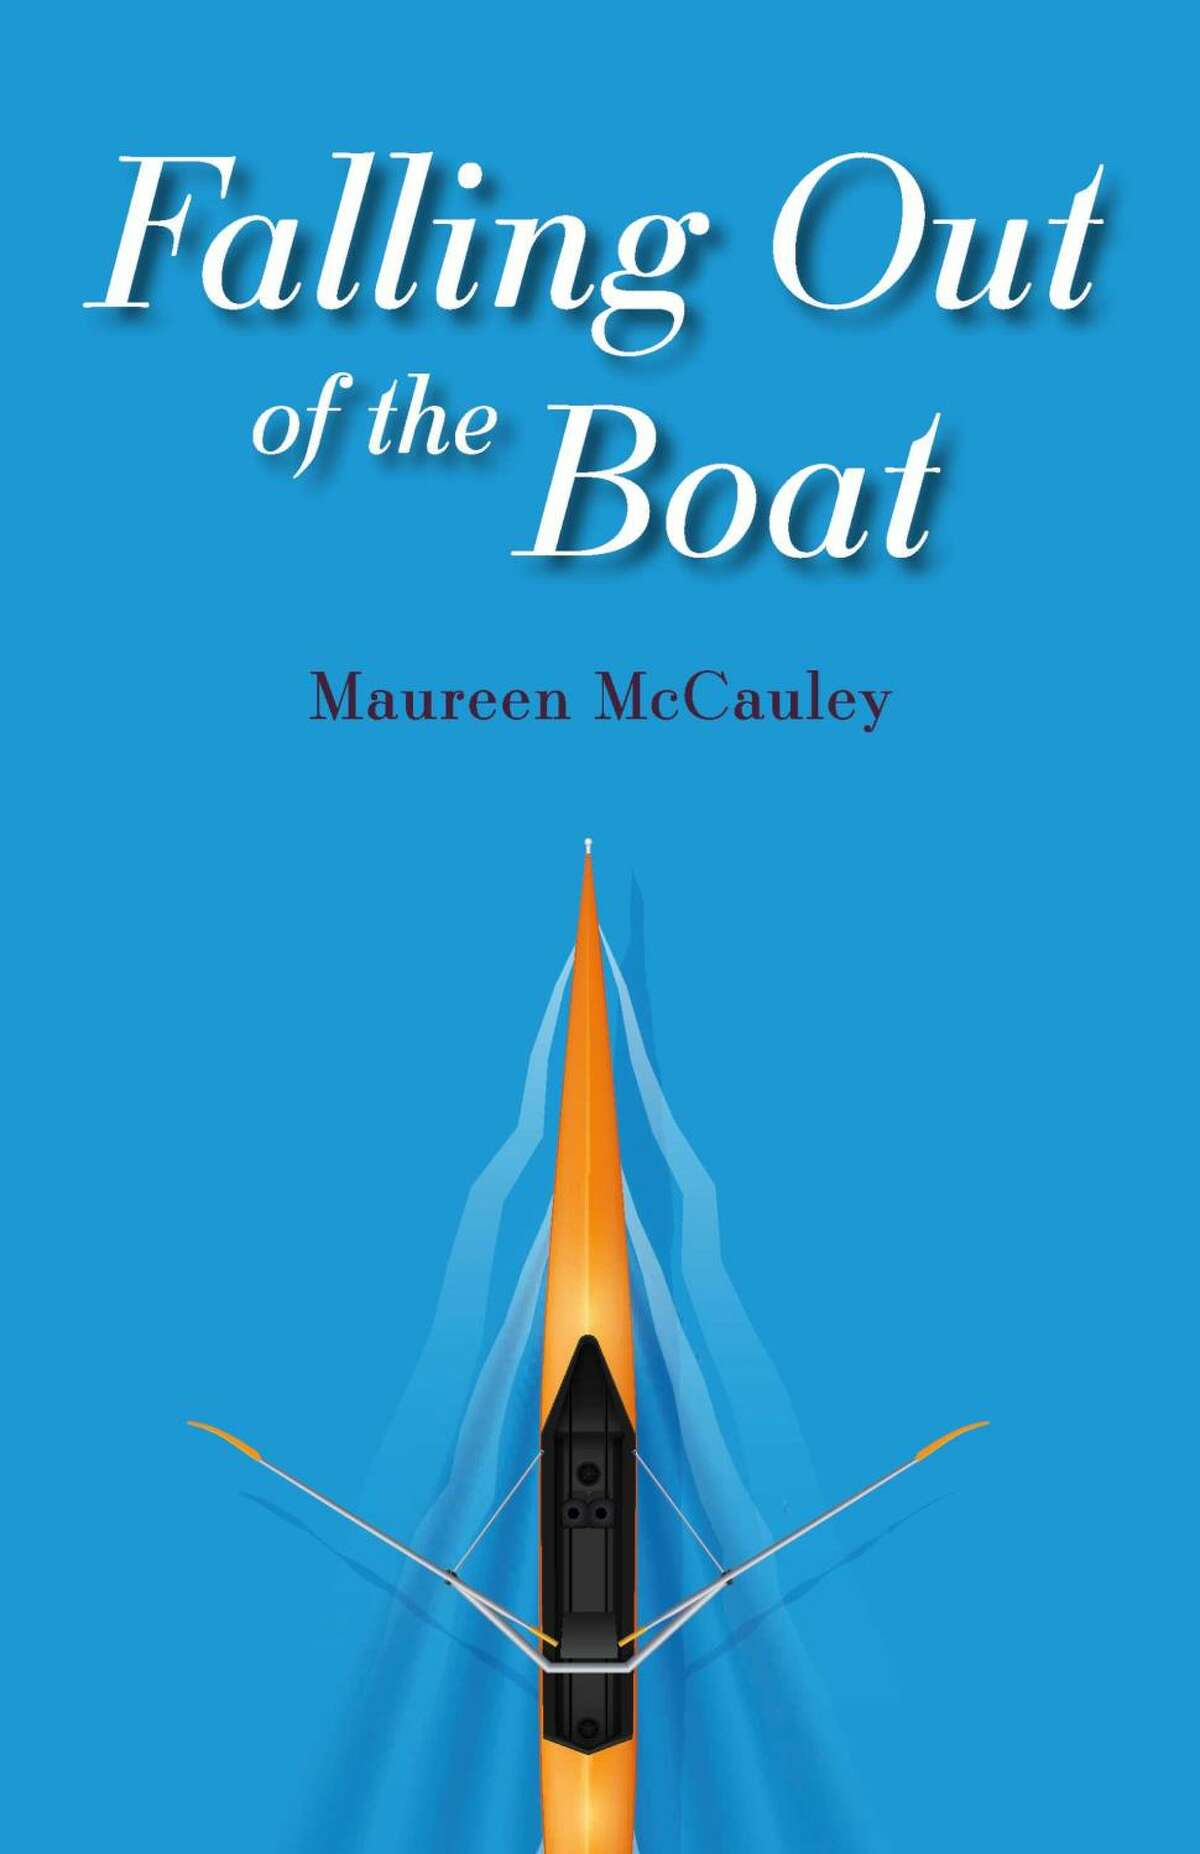 """""""Falling Out of the Boat"""" by Maureen McCauley."""